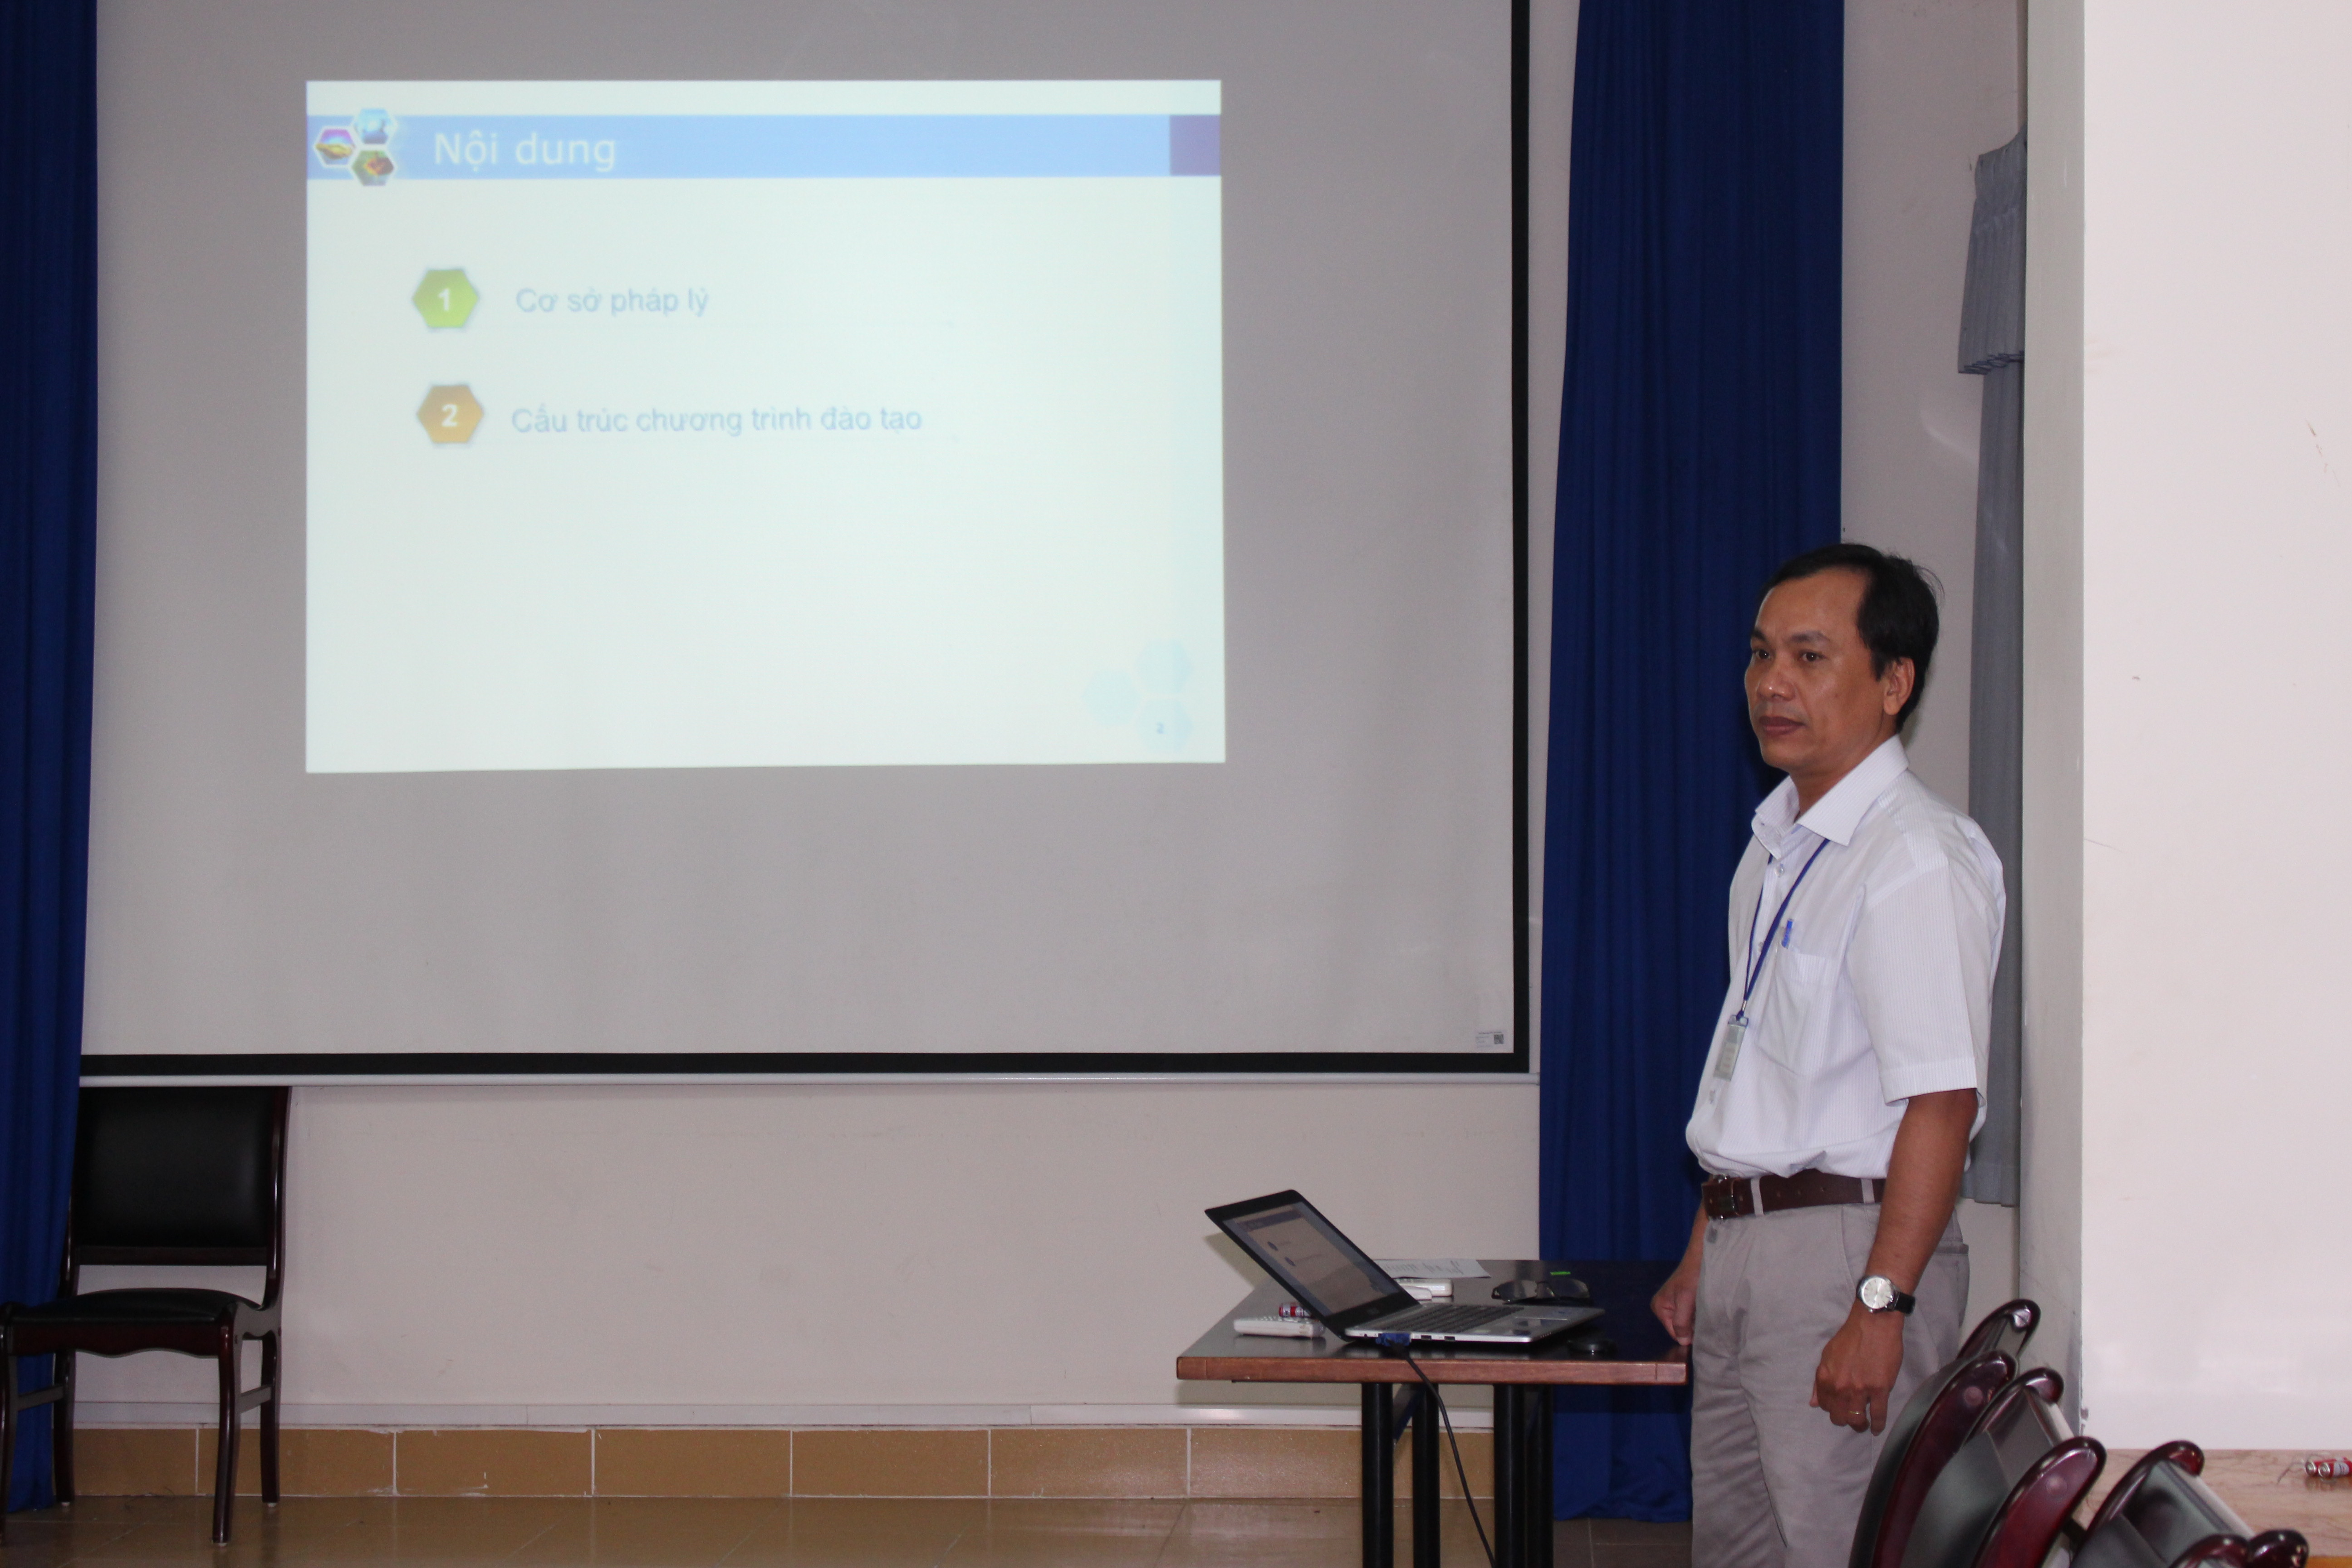 Mr. Pham Huu Dung – Lecturer presented the information of the Web Design program